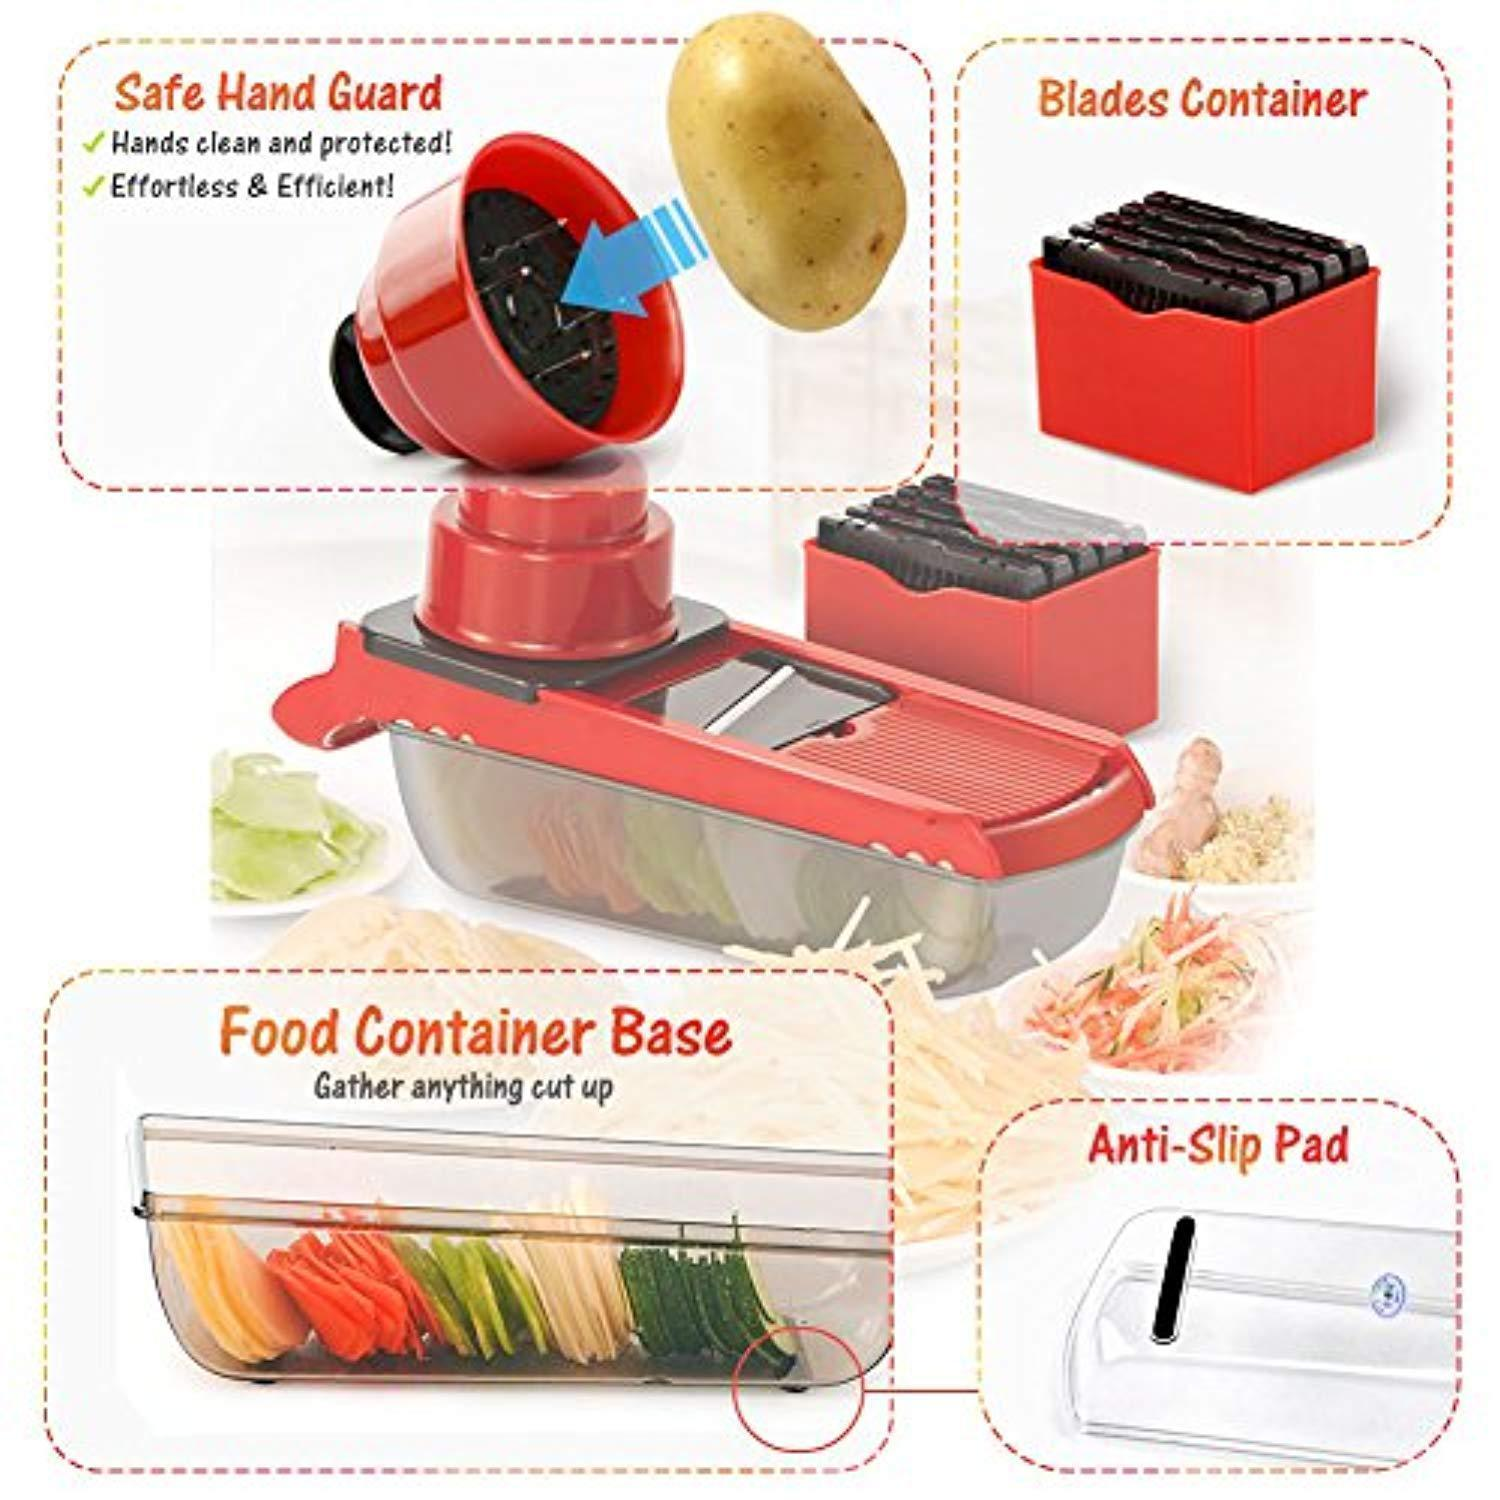 6 IN 1-Vegetable Slicer with 6 Interchangeable Stainless Steel Blades